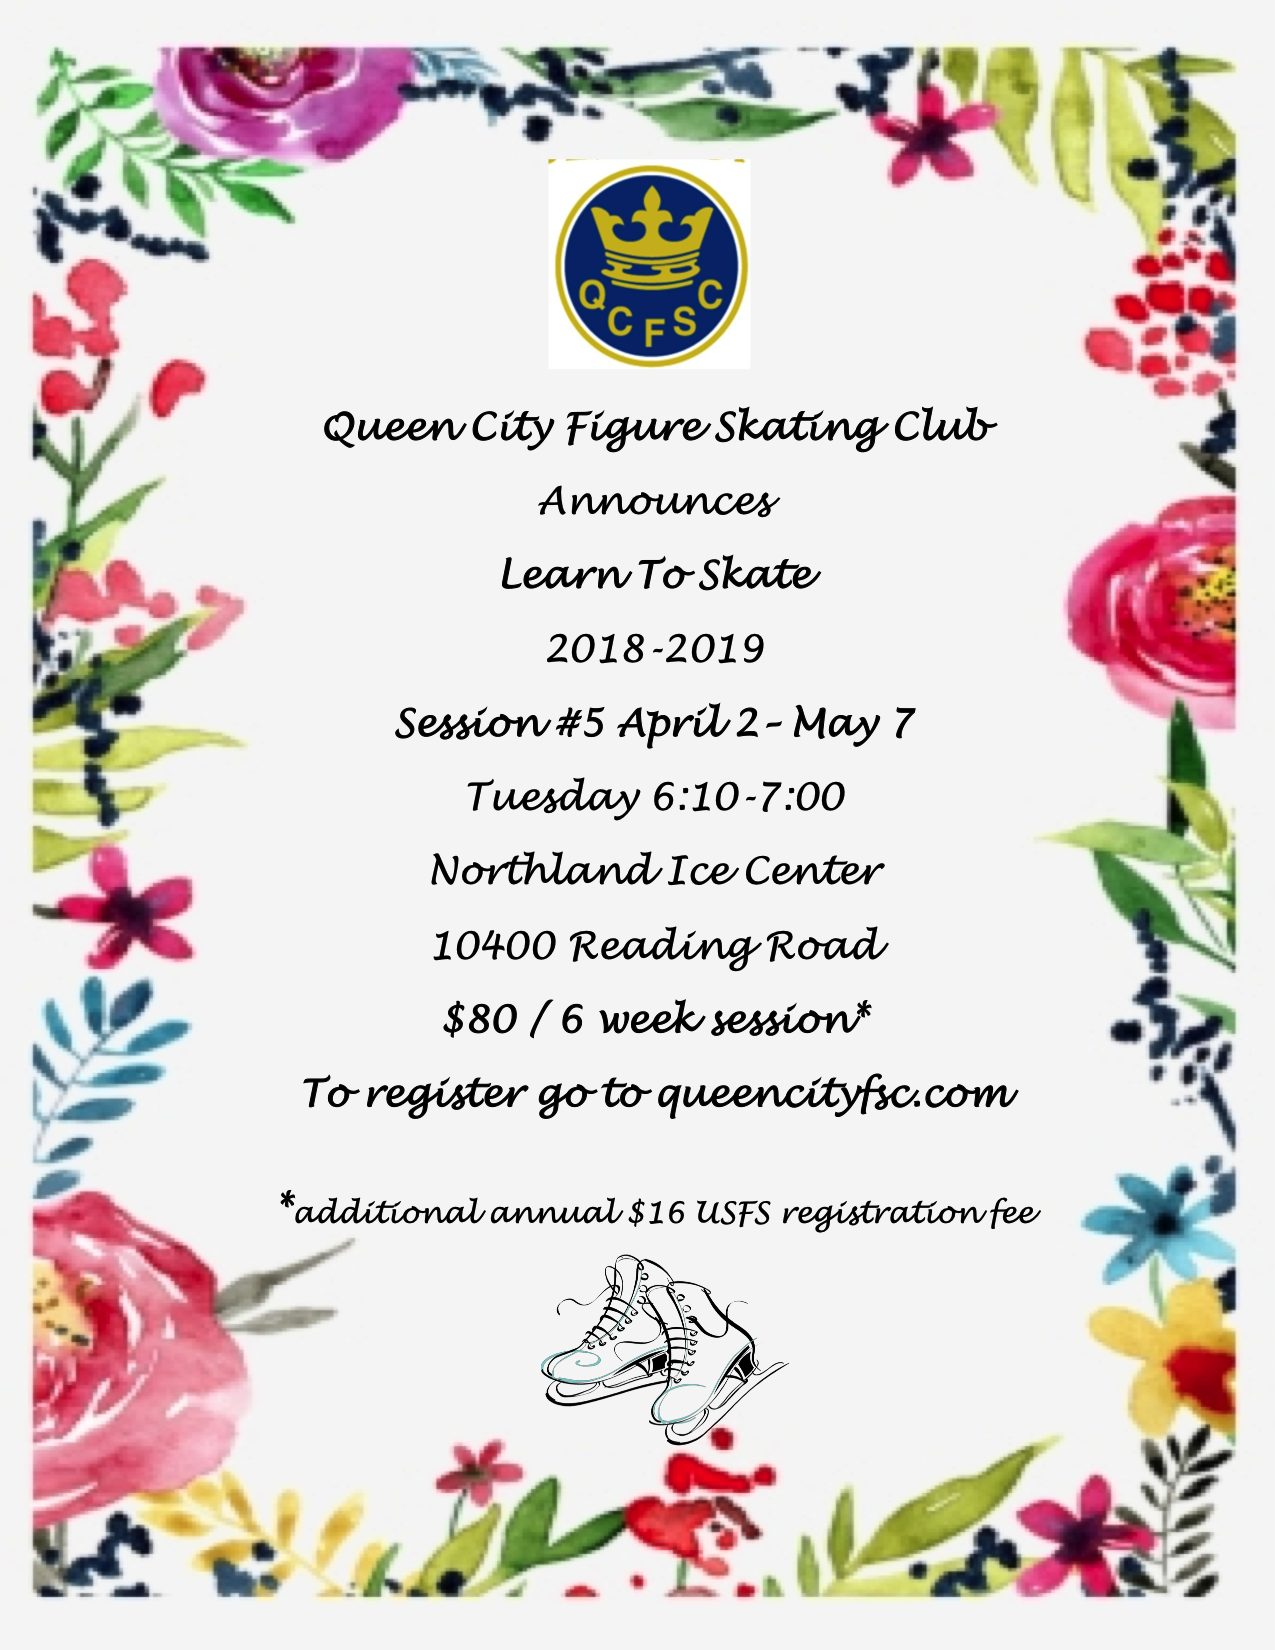 QCFSC 2018-19 Learn to Skate Session #5